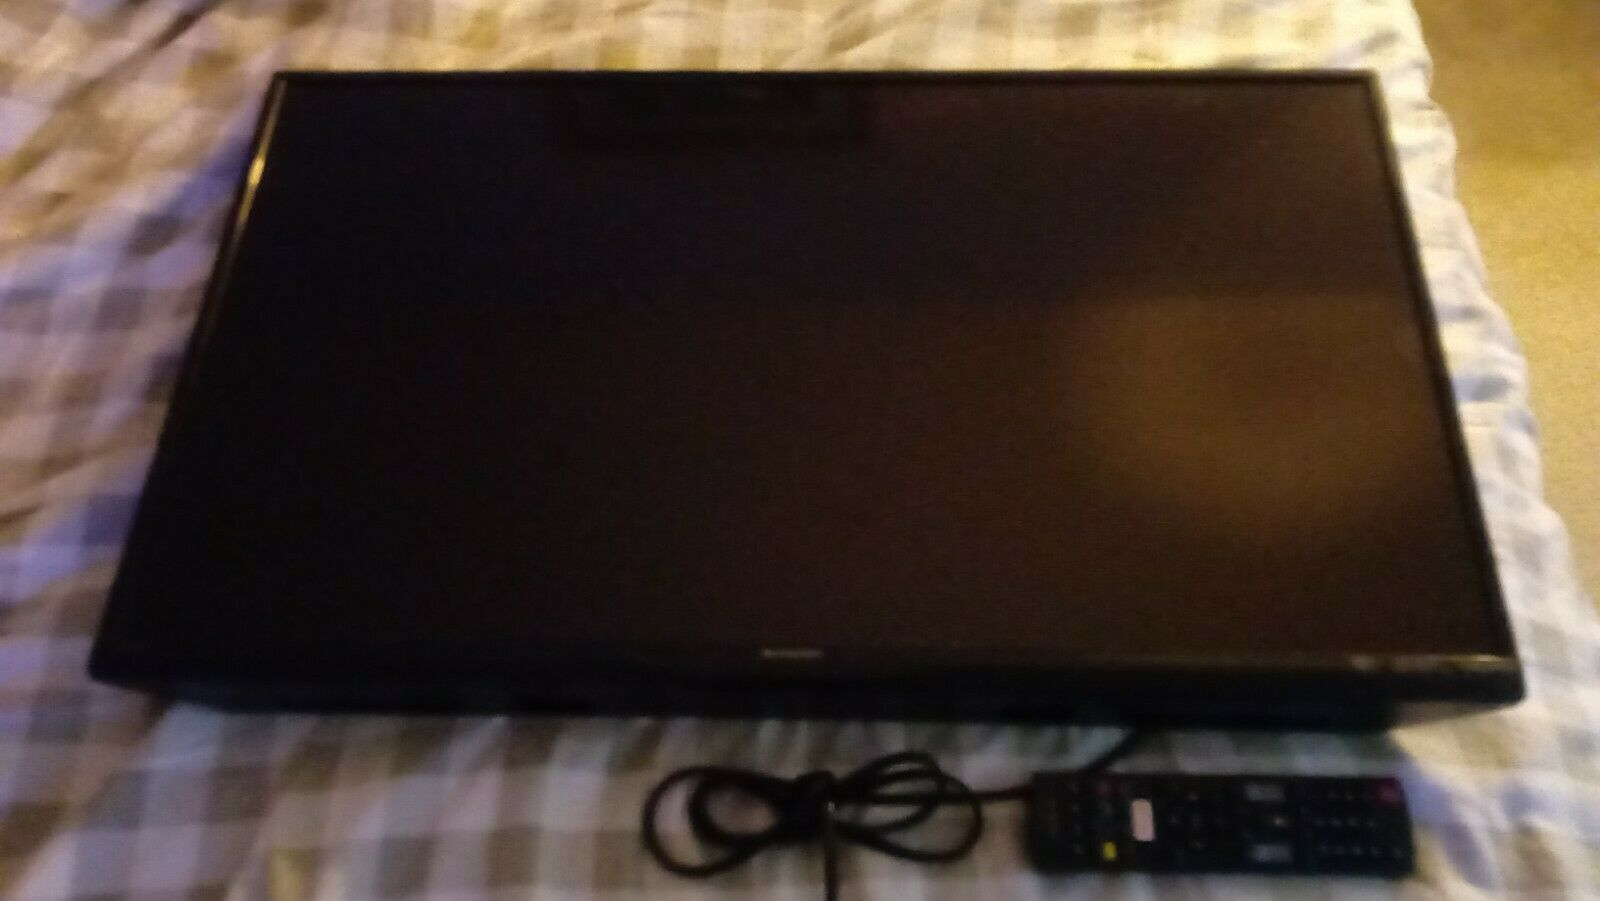 Sharp aquos 32 inch lcd TV with remote no stand